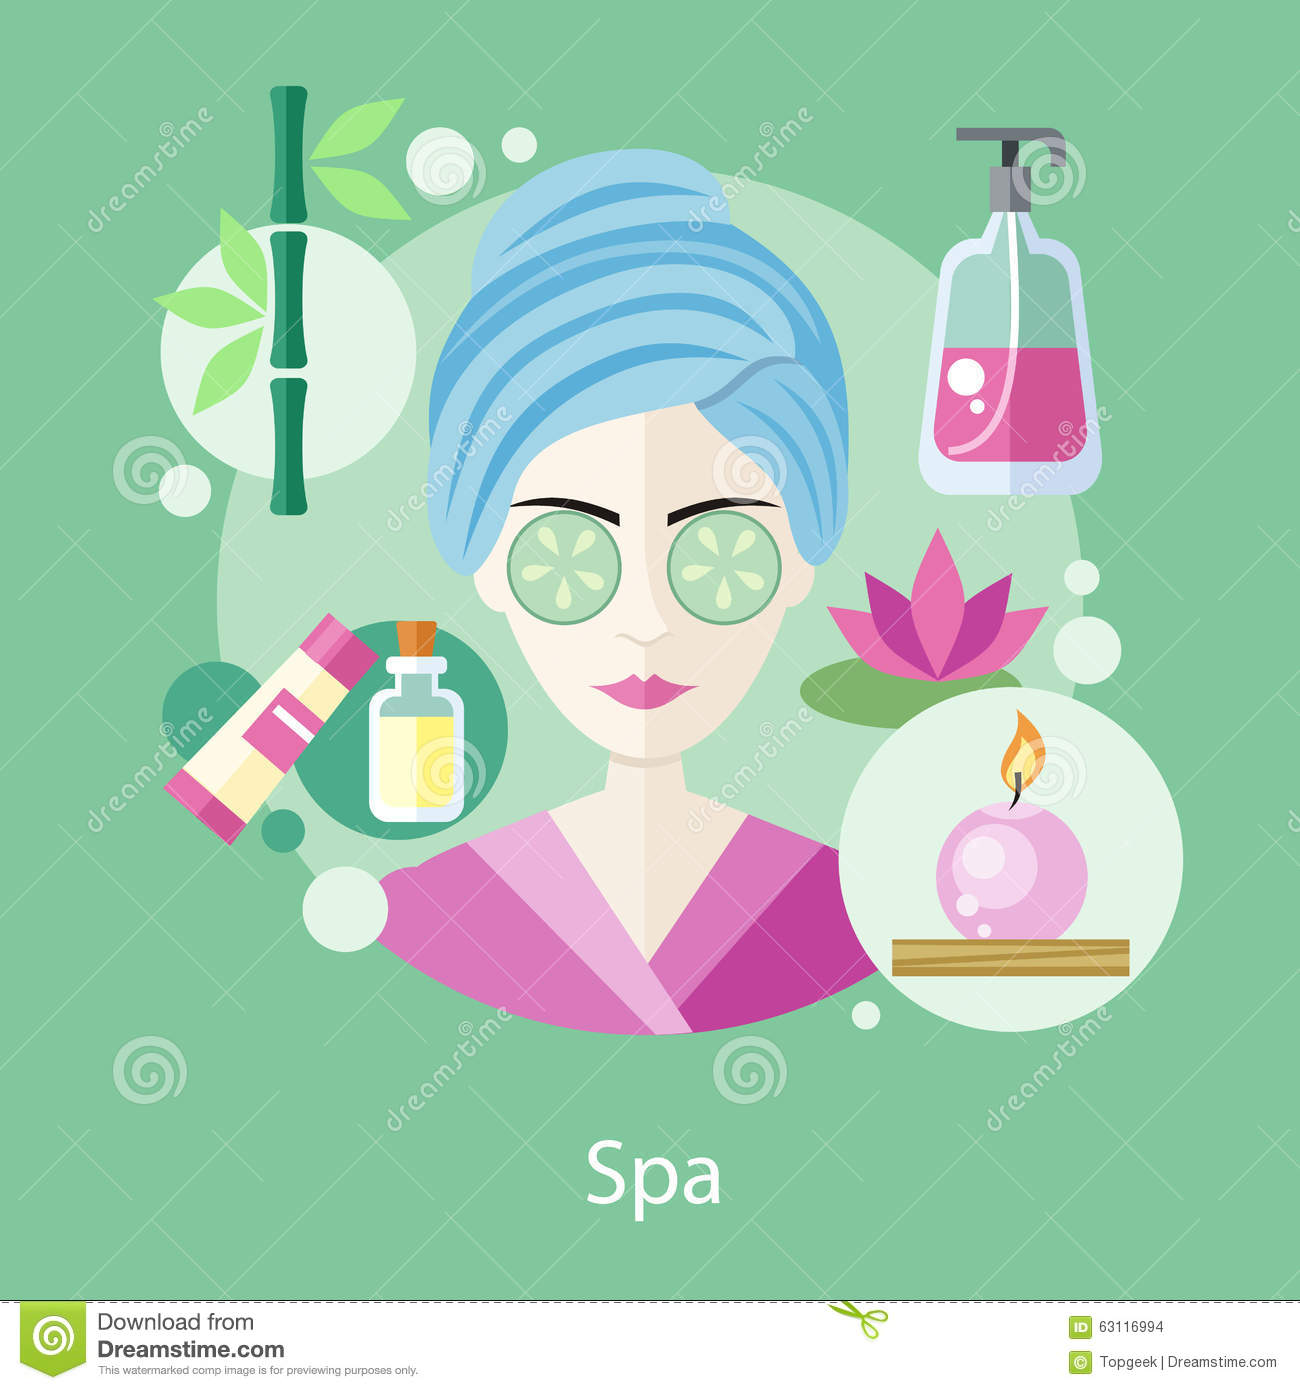 Fashion Nail Salon And Beauty Spa Games For Girls: Spa Salon Concept Flat Style Design Stock Vector